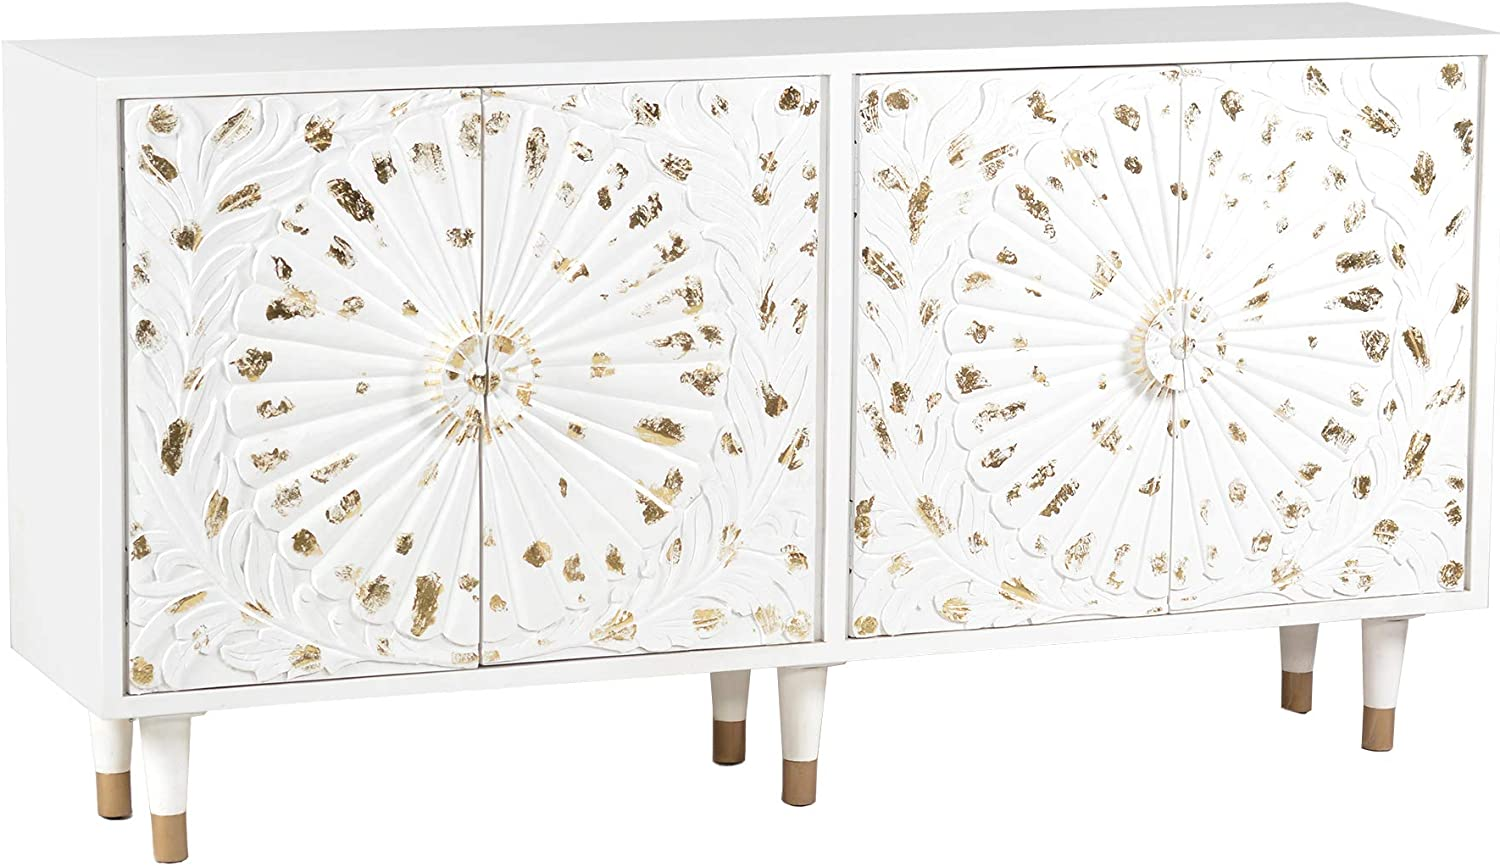 4 Door Wooden Sideboard with Engraved It is very popular Front Sunburst Design Ranking integrated 1st place Whi